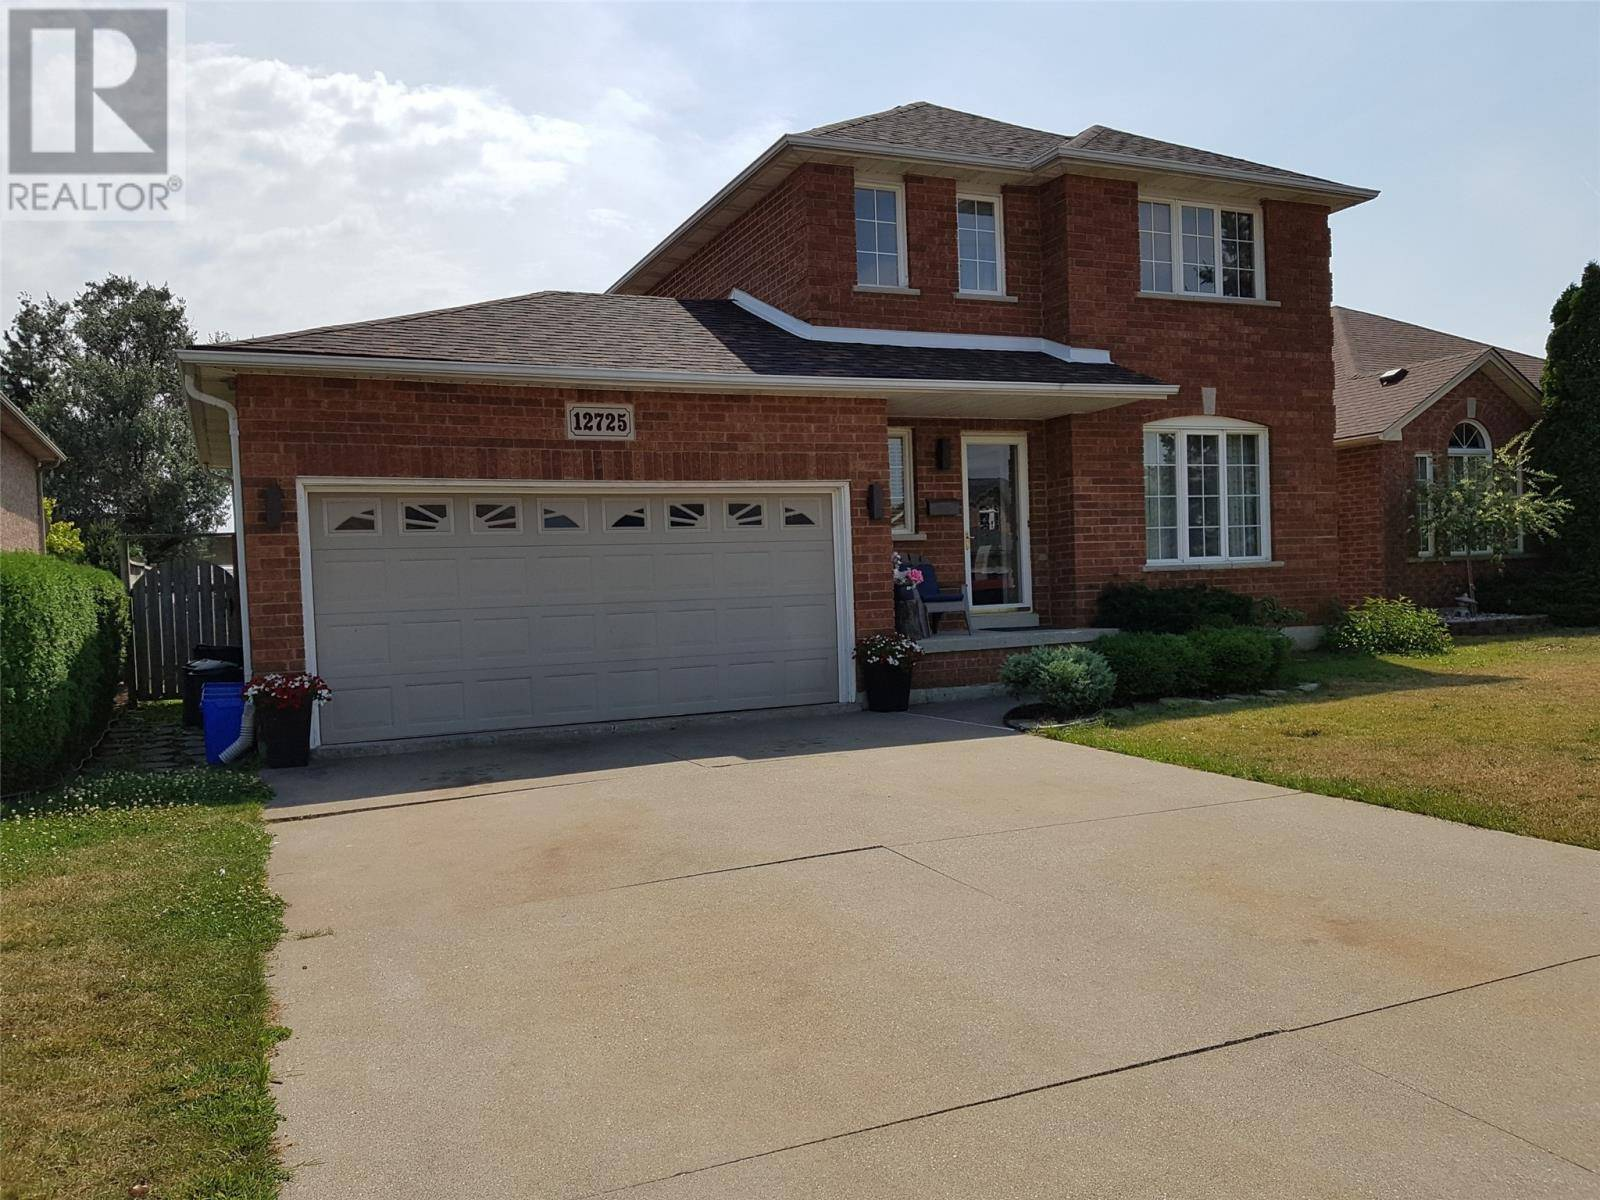 House for sale at 12725 Lanoue St Tecumseh Ontario - MLS: 19023440